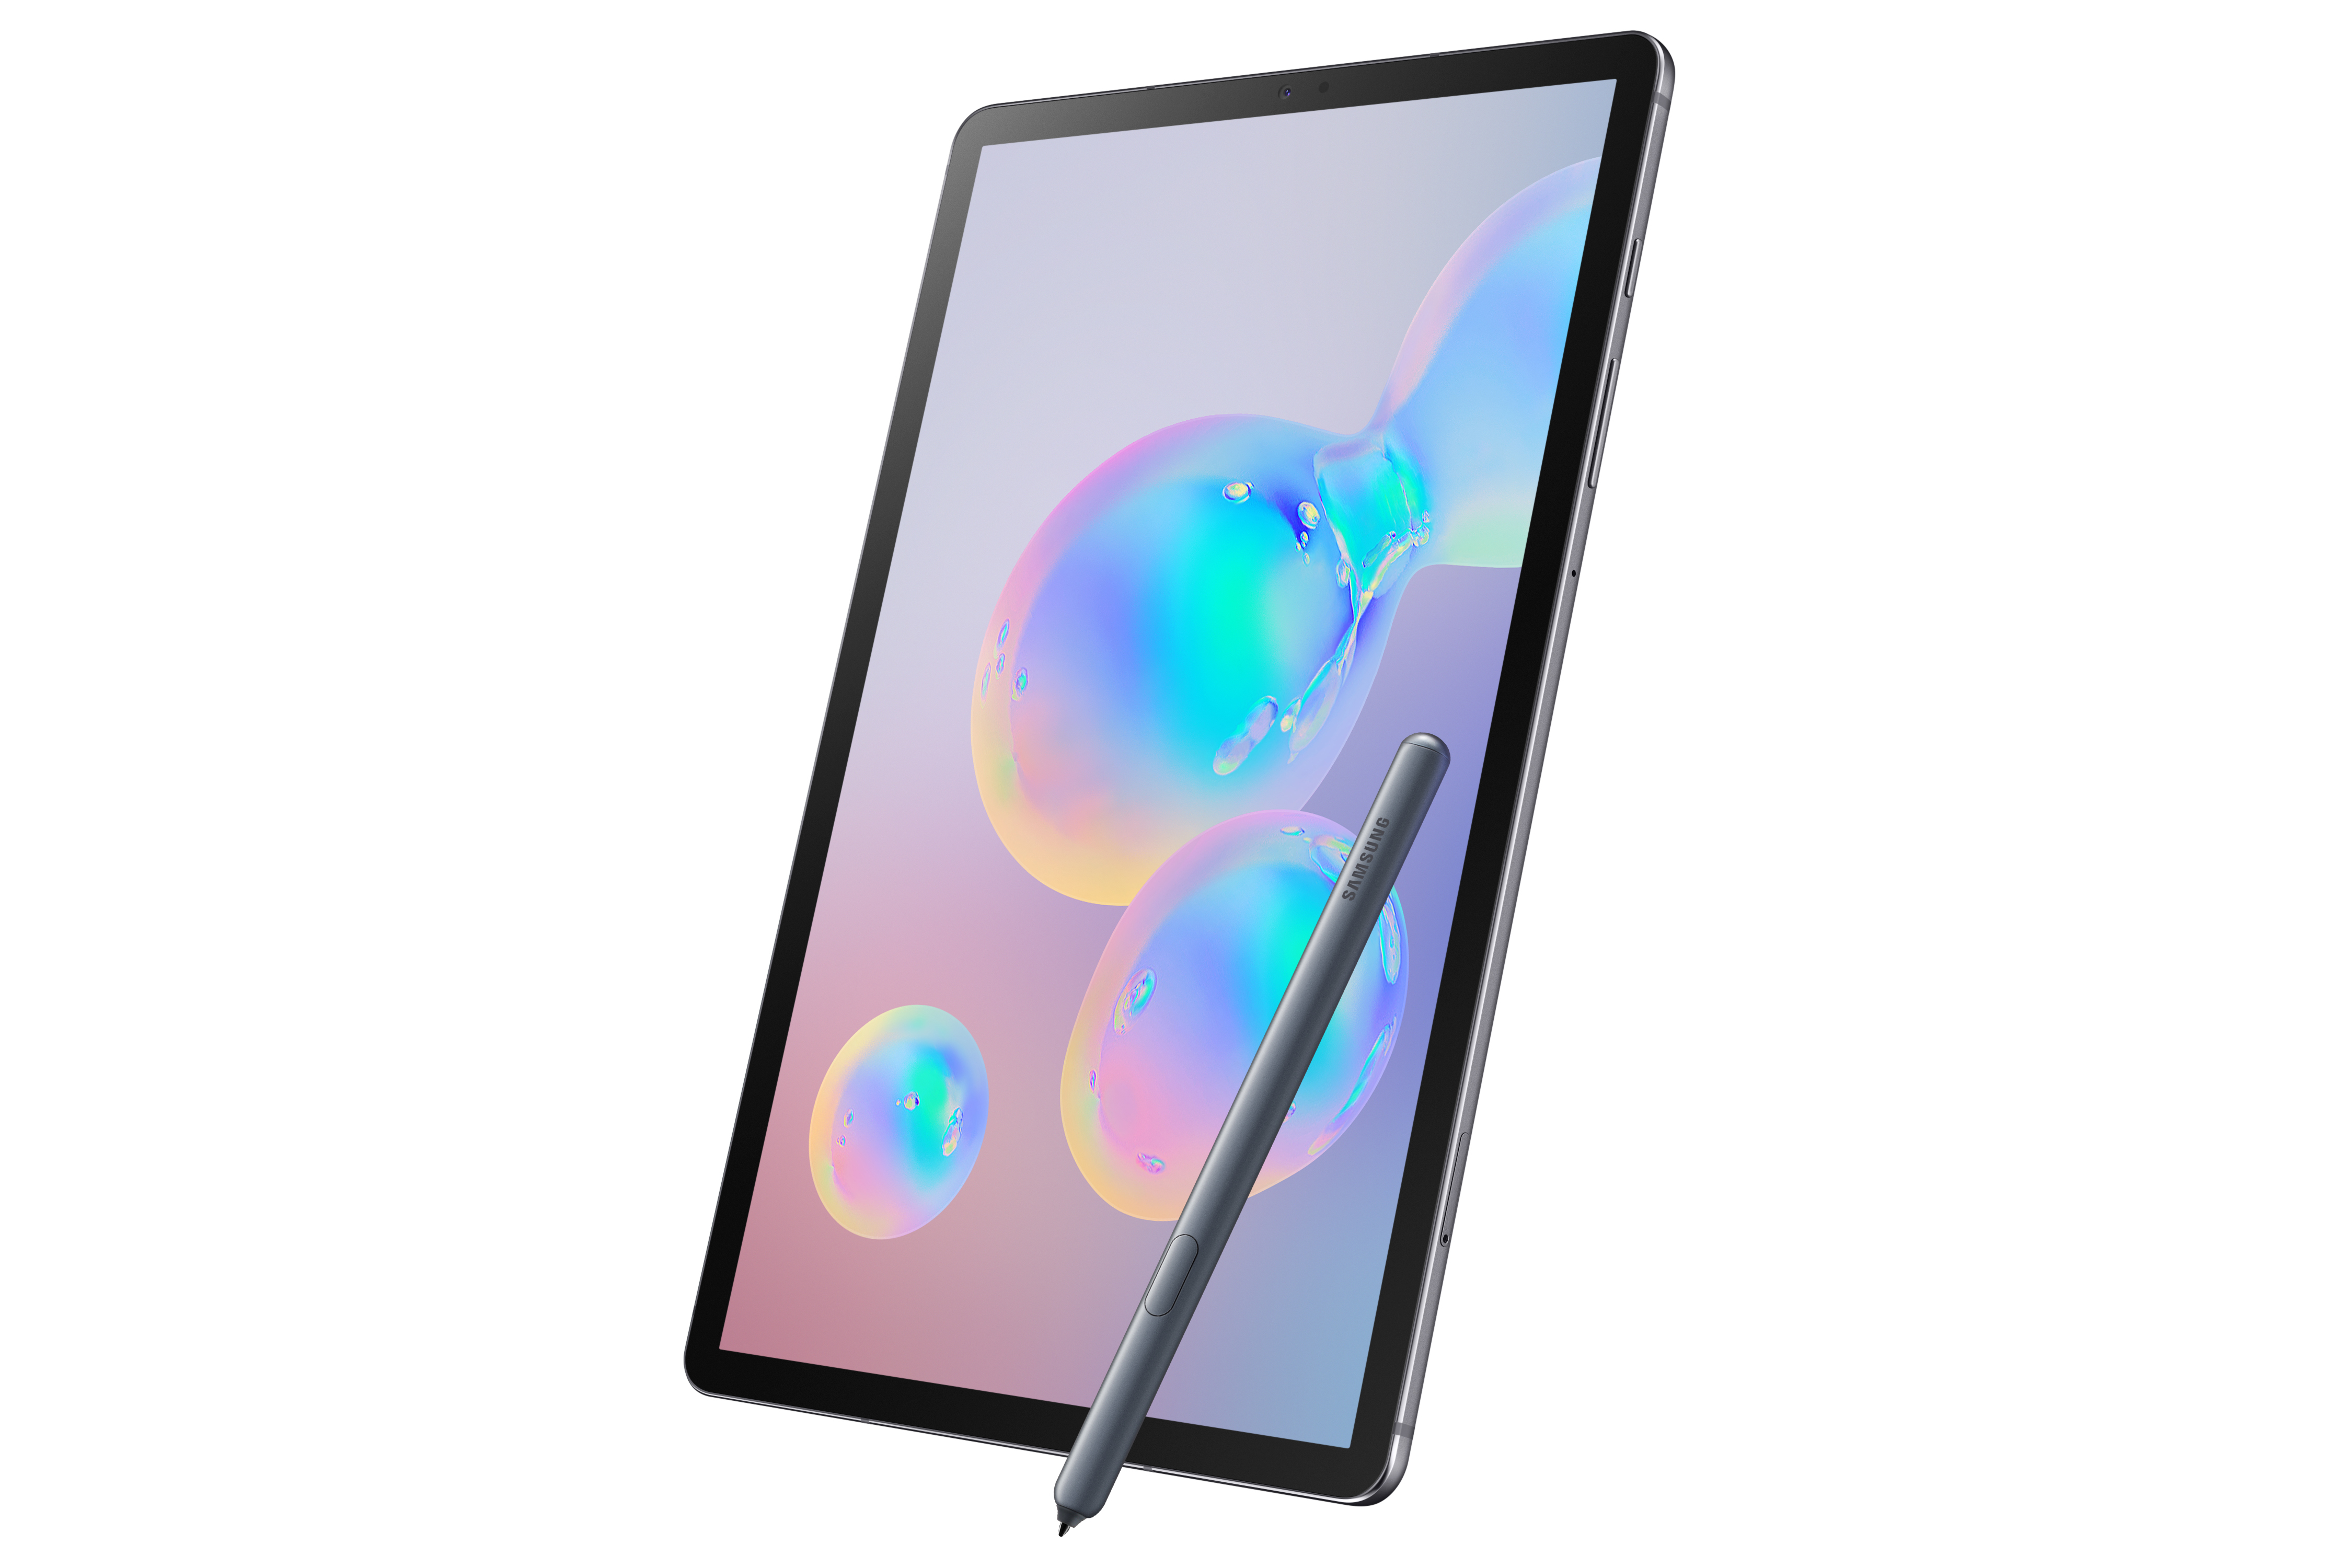 Introducing the Samsung Galaxy Tab S6: A New Tablet that